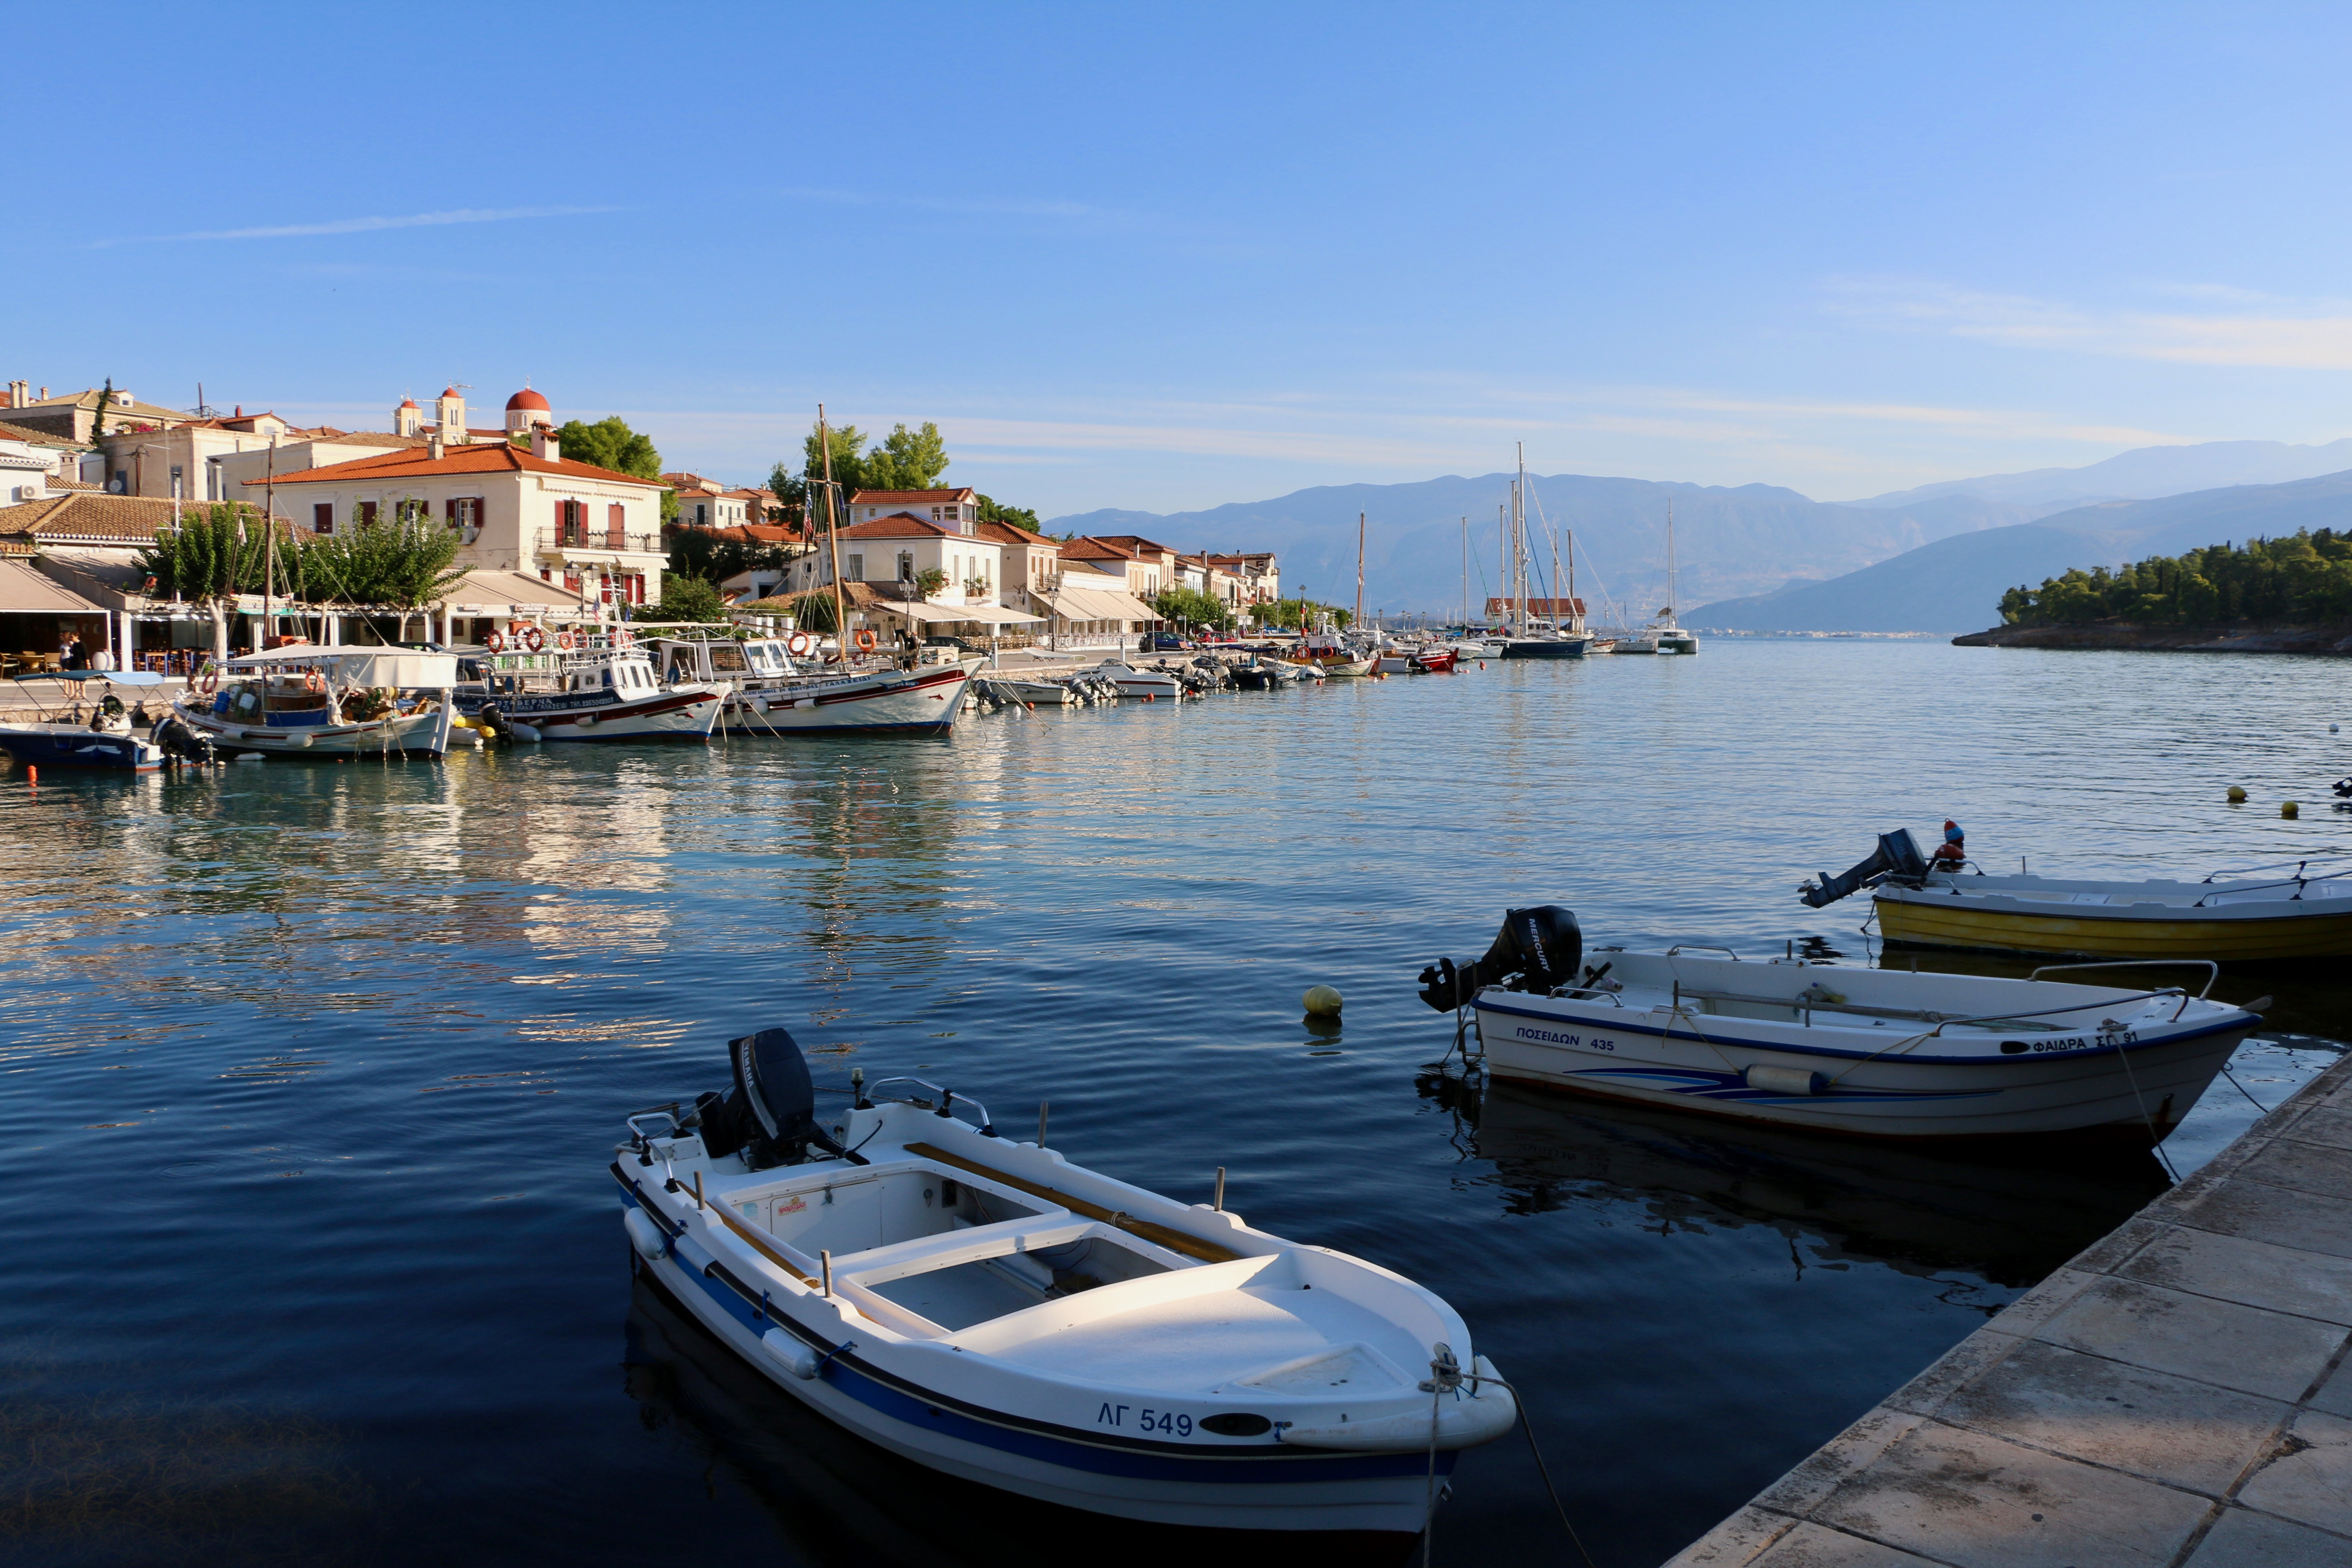 50 Photos That Will Make You Want to Visit the Corinthian Riviera